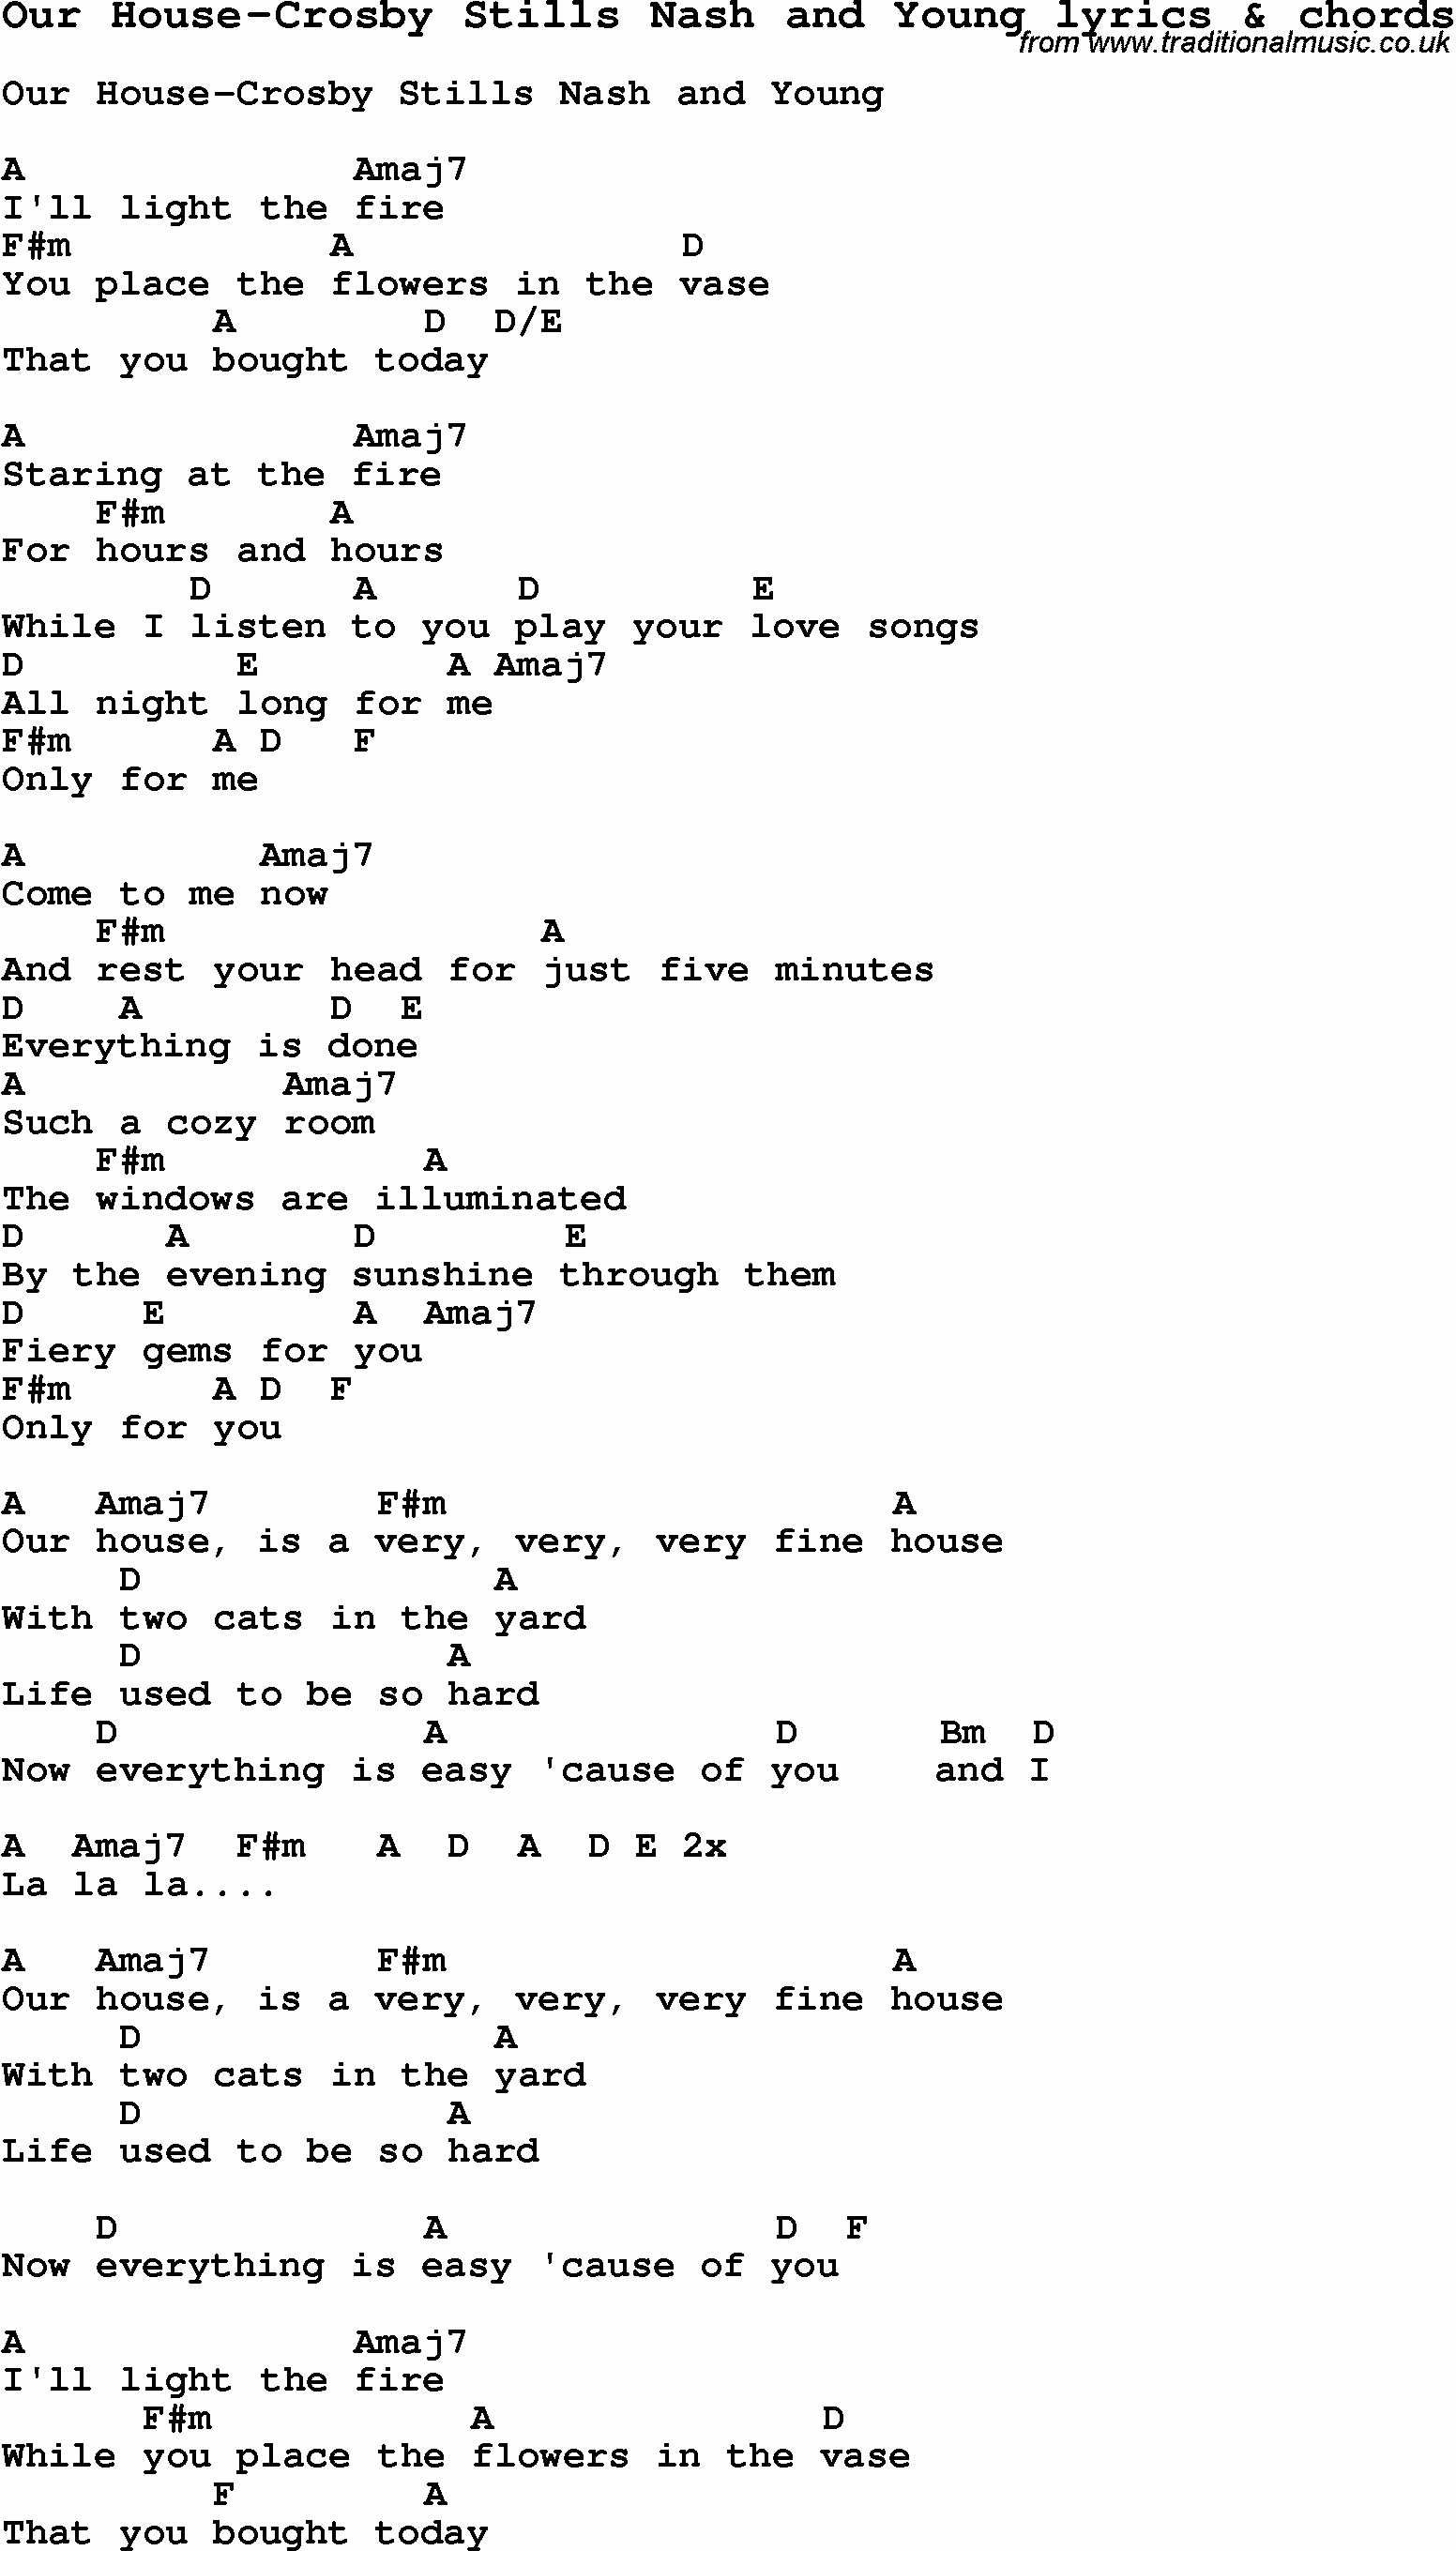 Acoustic Guitar Notes That Is Best Quality Acousticguitarnotes Music Chords Lyrics And Chords Guitar Chords For Songs